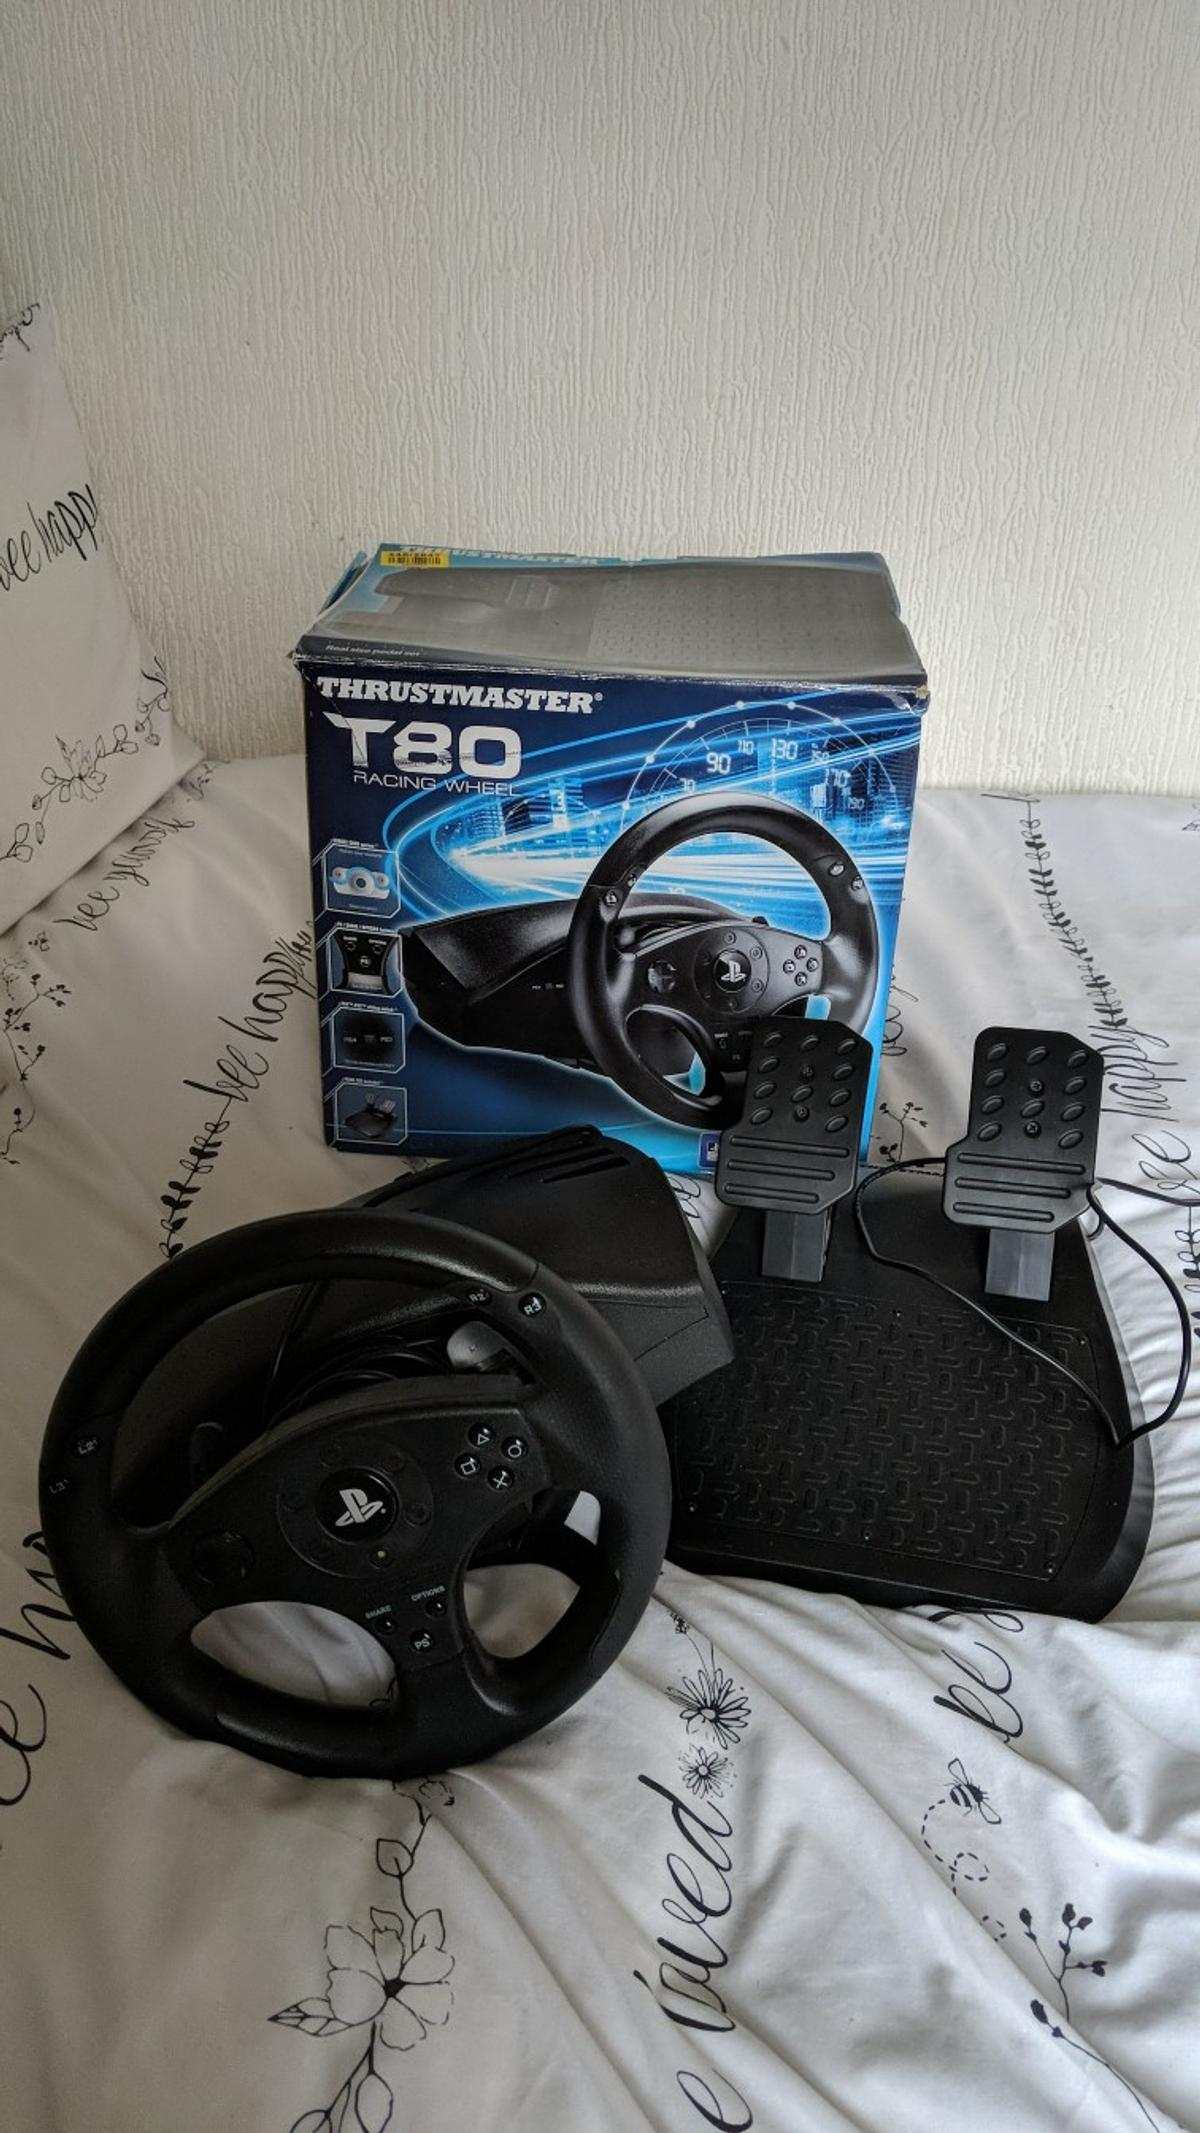 thrustmaster t80 racing wheel for PS3/ps4 in BL3 Bolton for